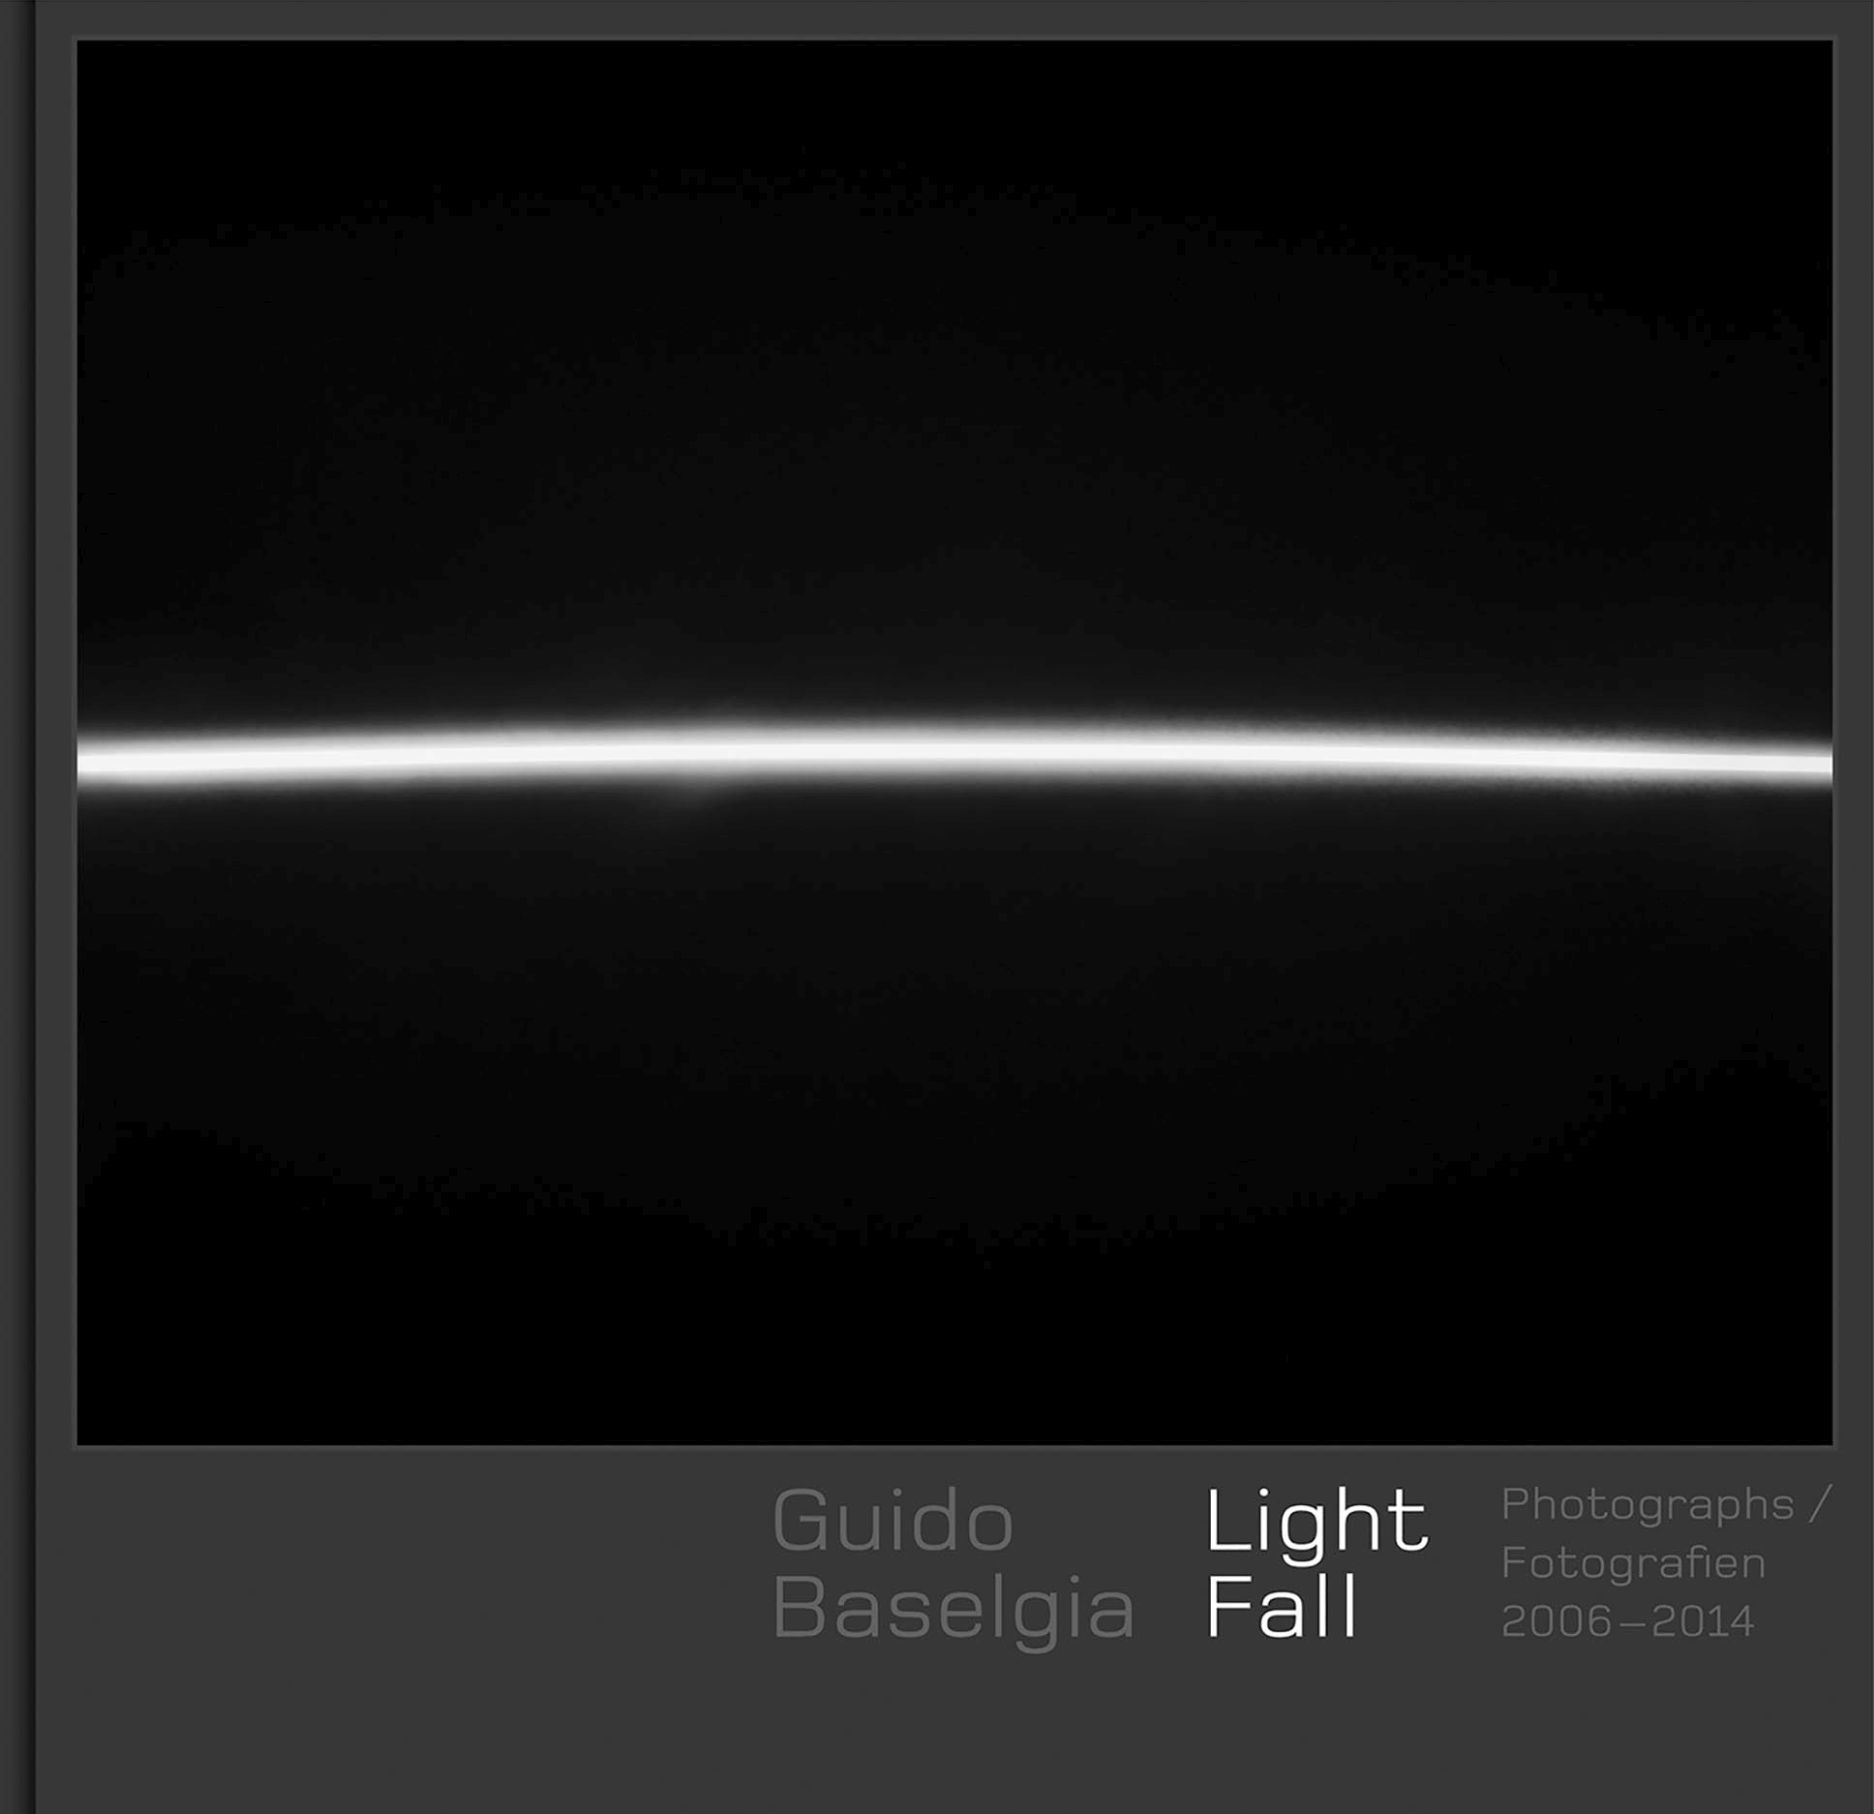 Guido Baselgia - Light Fall: Photographs 2006-2014